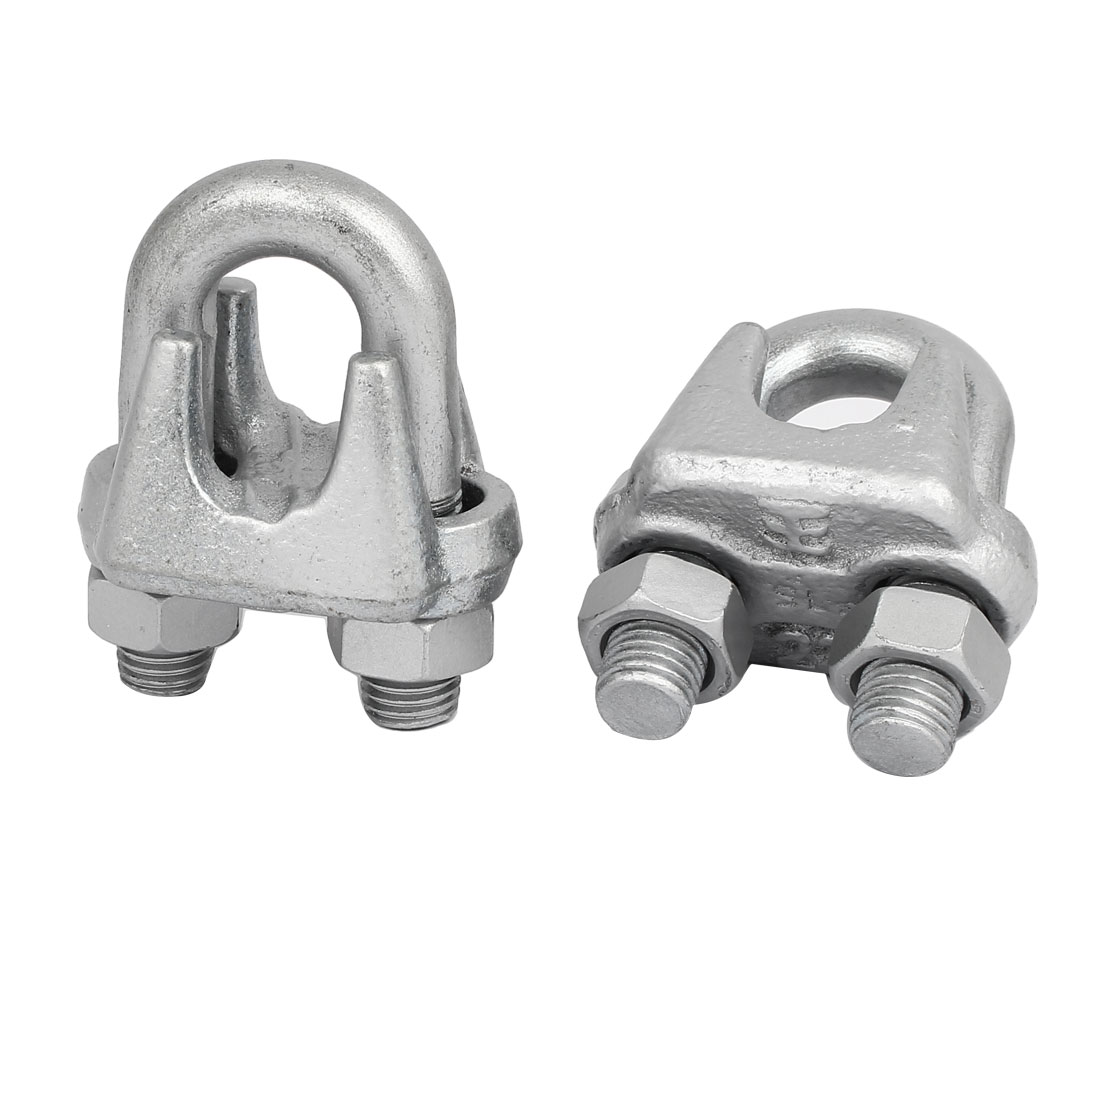 22mm Metal Wire Cable Rope Clips Saddle Clamps Fasteners Silver Gray 2pcs